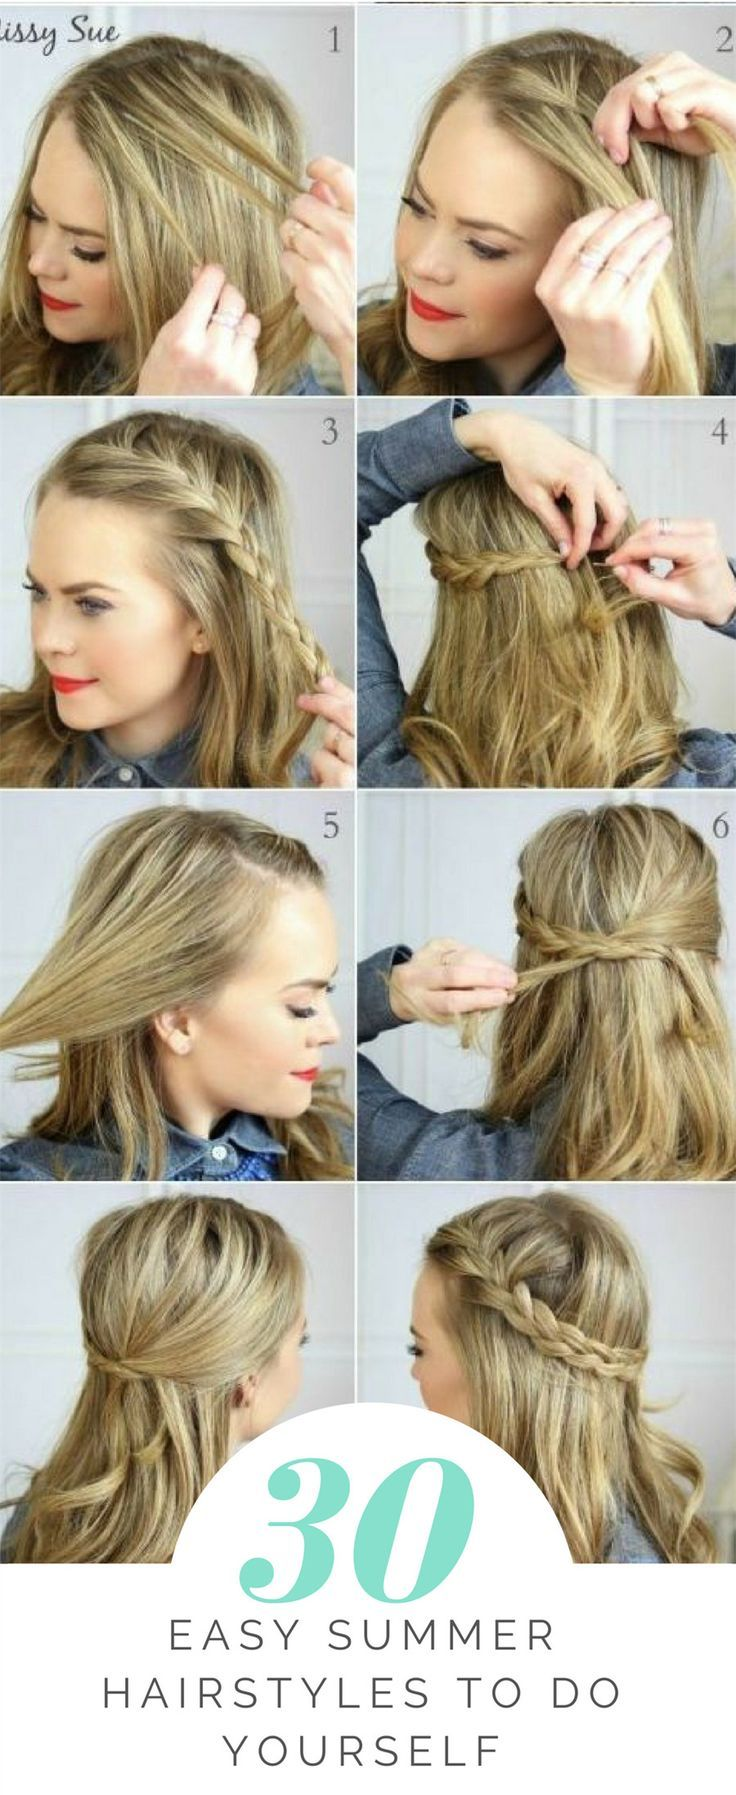 30 Easy Summer Hairstyles To Do Yourself Hair Styles Easy Hairstyles For Medium Hair Medium Hair Styles